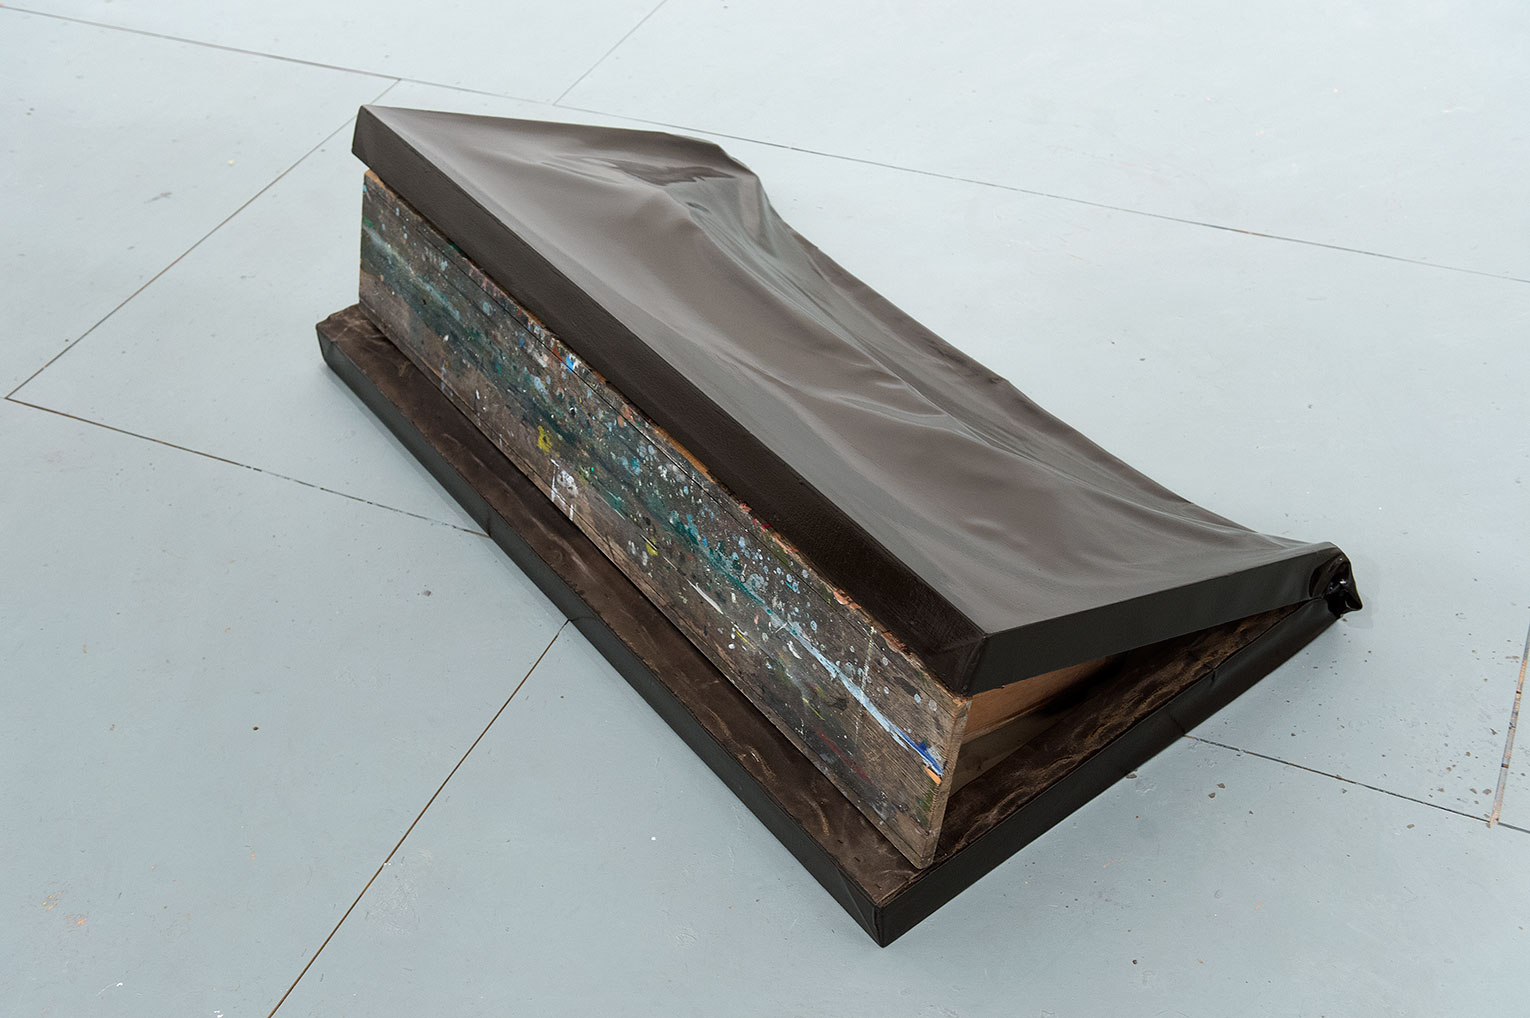 <b>Title:&nbsp;</b>Debris<br /><b>Year:&nbsp;</b>2012<br /><b>Medium:&nbsp;</b>Canvas and bench<br /><b>Size:&nbsp;</b>45 x 84 x 155 cm